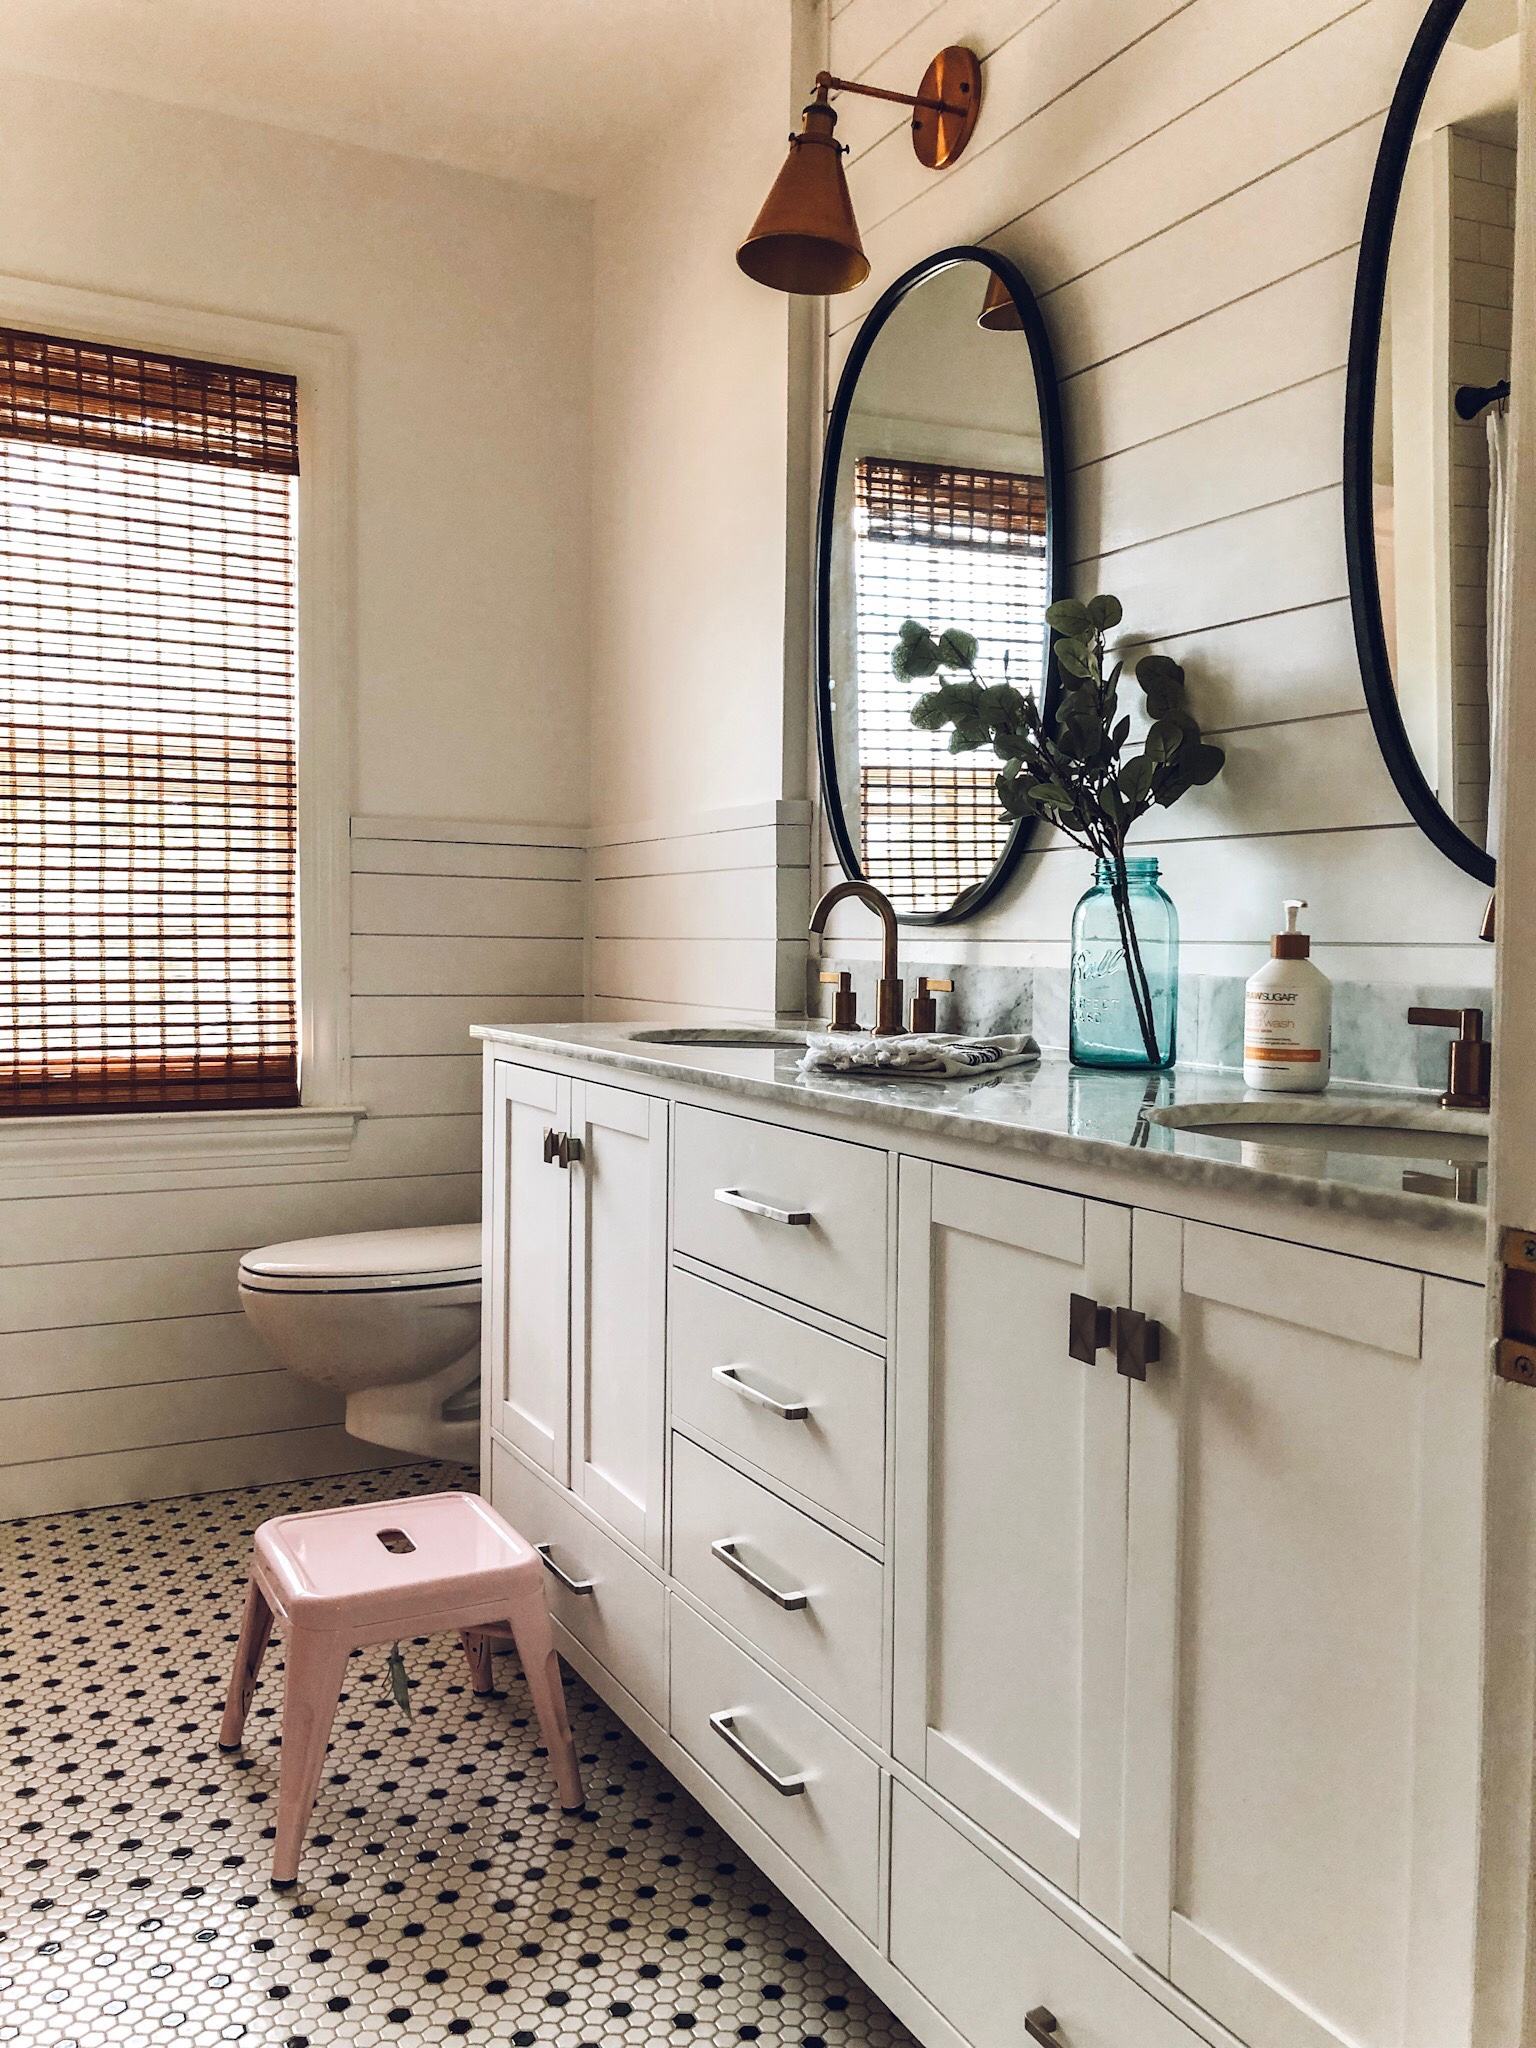 Pink Bathroom remodel. Find sources at onedelightfulcreative.com / www.instagram.com/onedelightfulhome